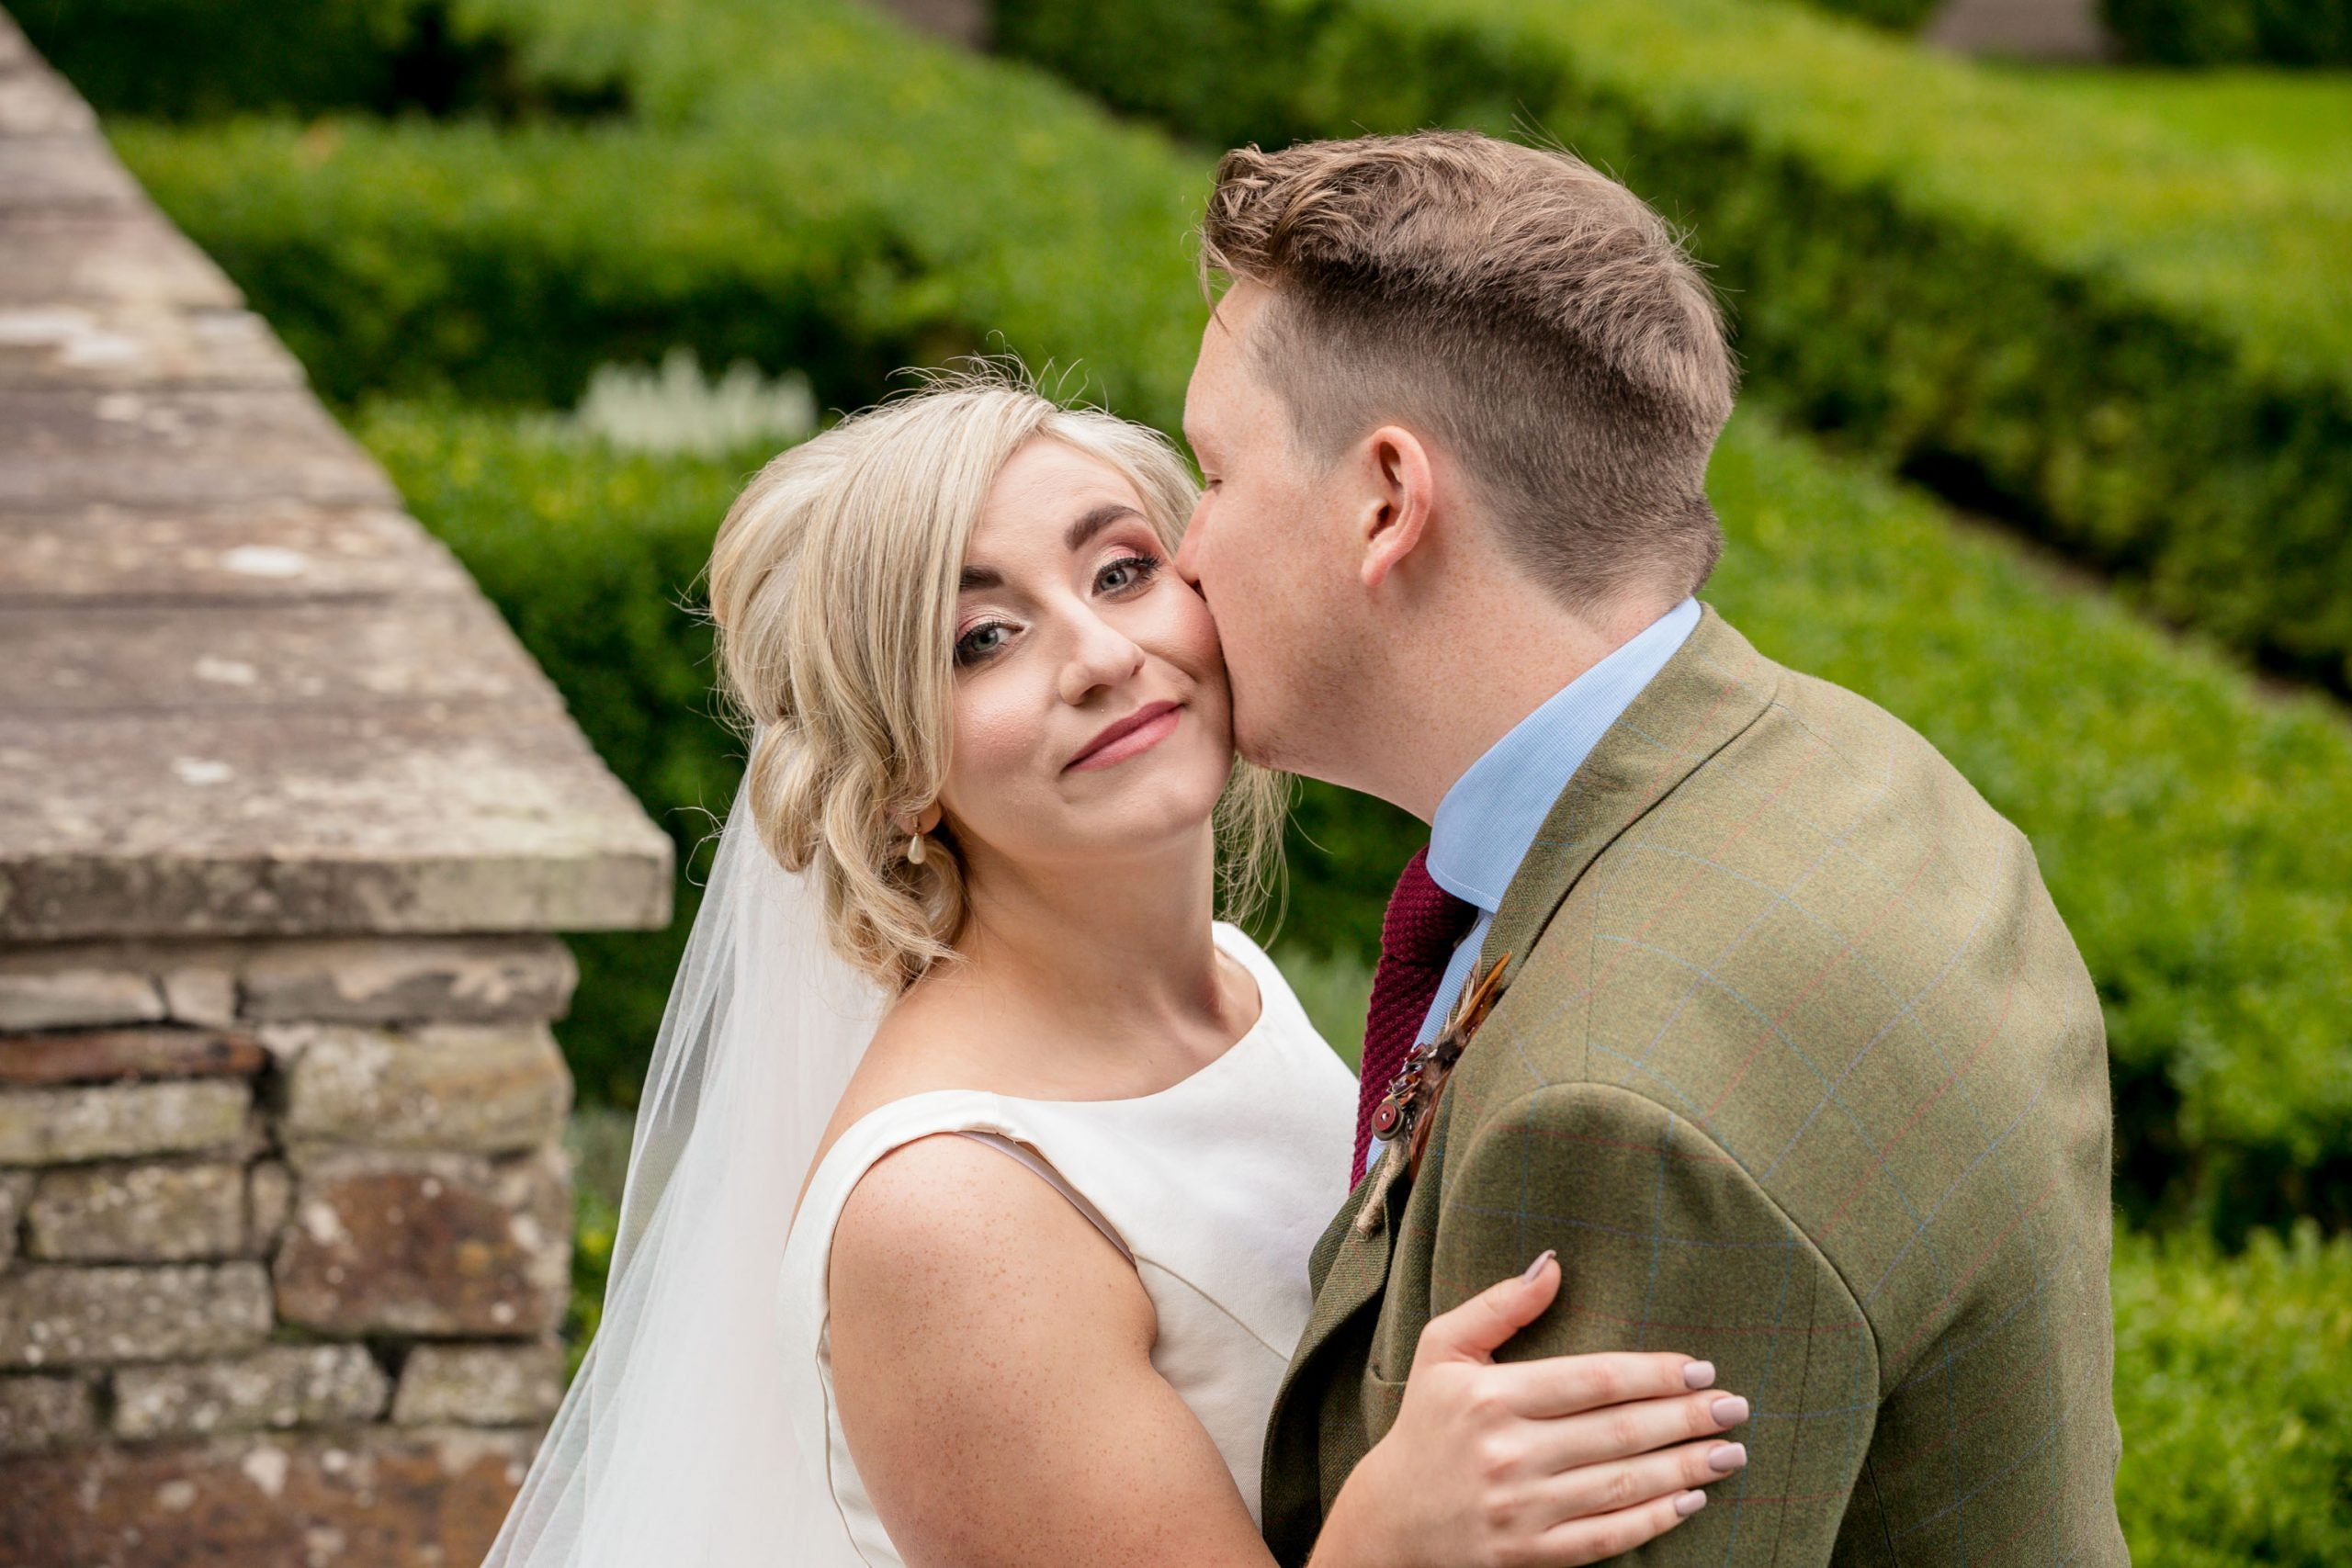 Wedding of Sam & Jaz at Llancaich Fawr, Tania Miller Photography, Caerphilly Wedding Photographer